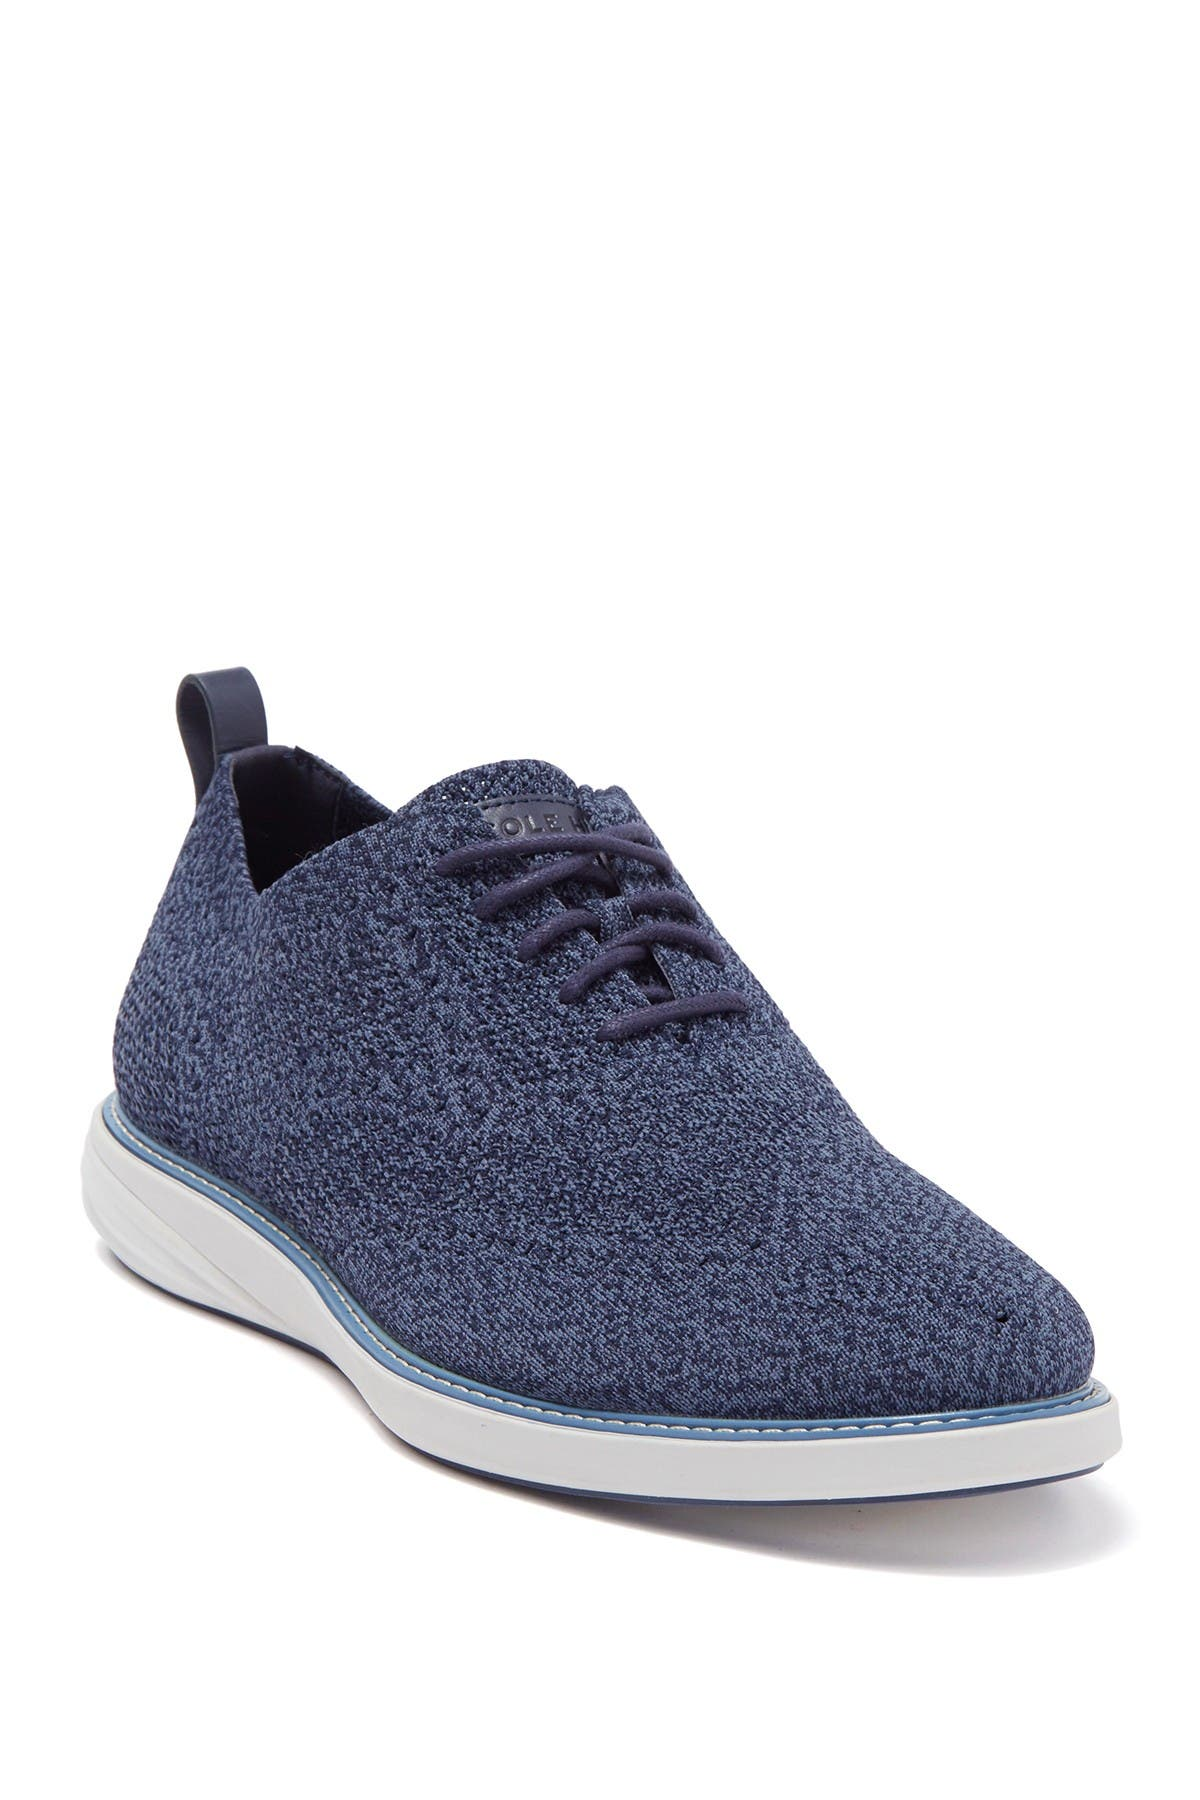 Image of Cole Haan Oxford Lace-Up Shoe